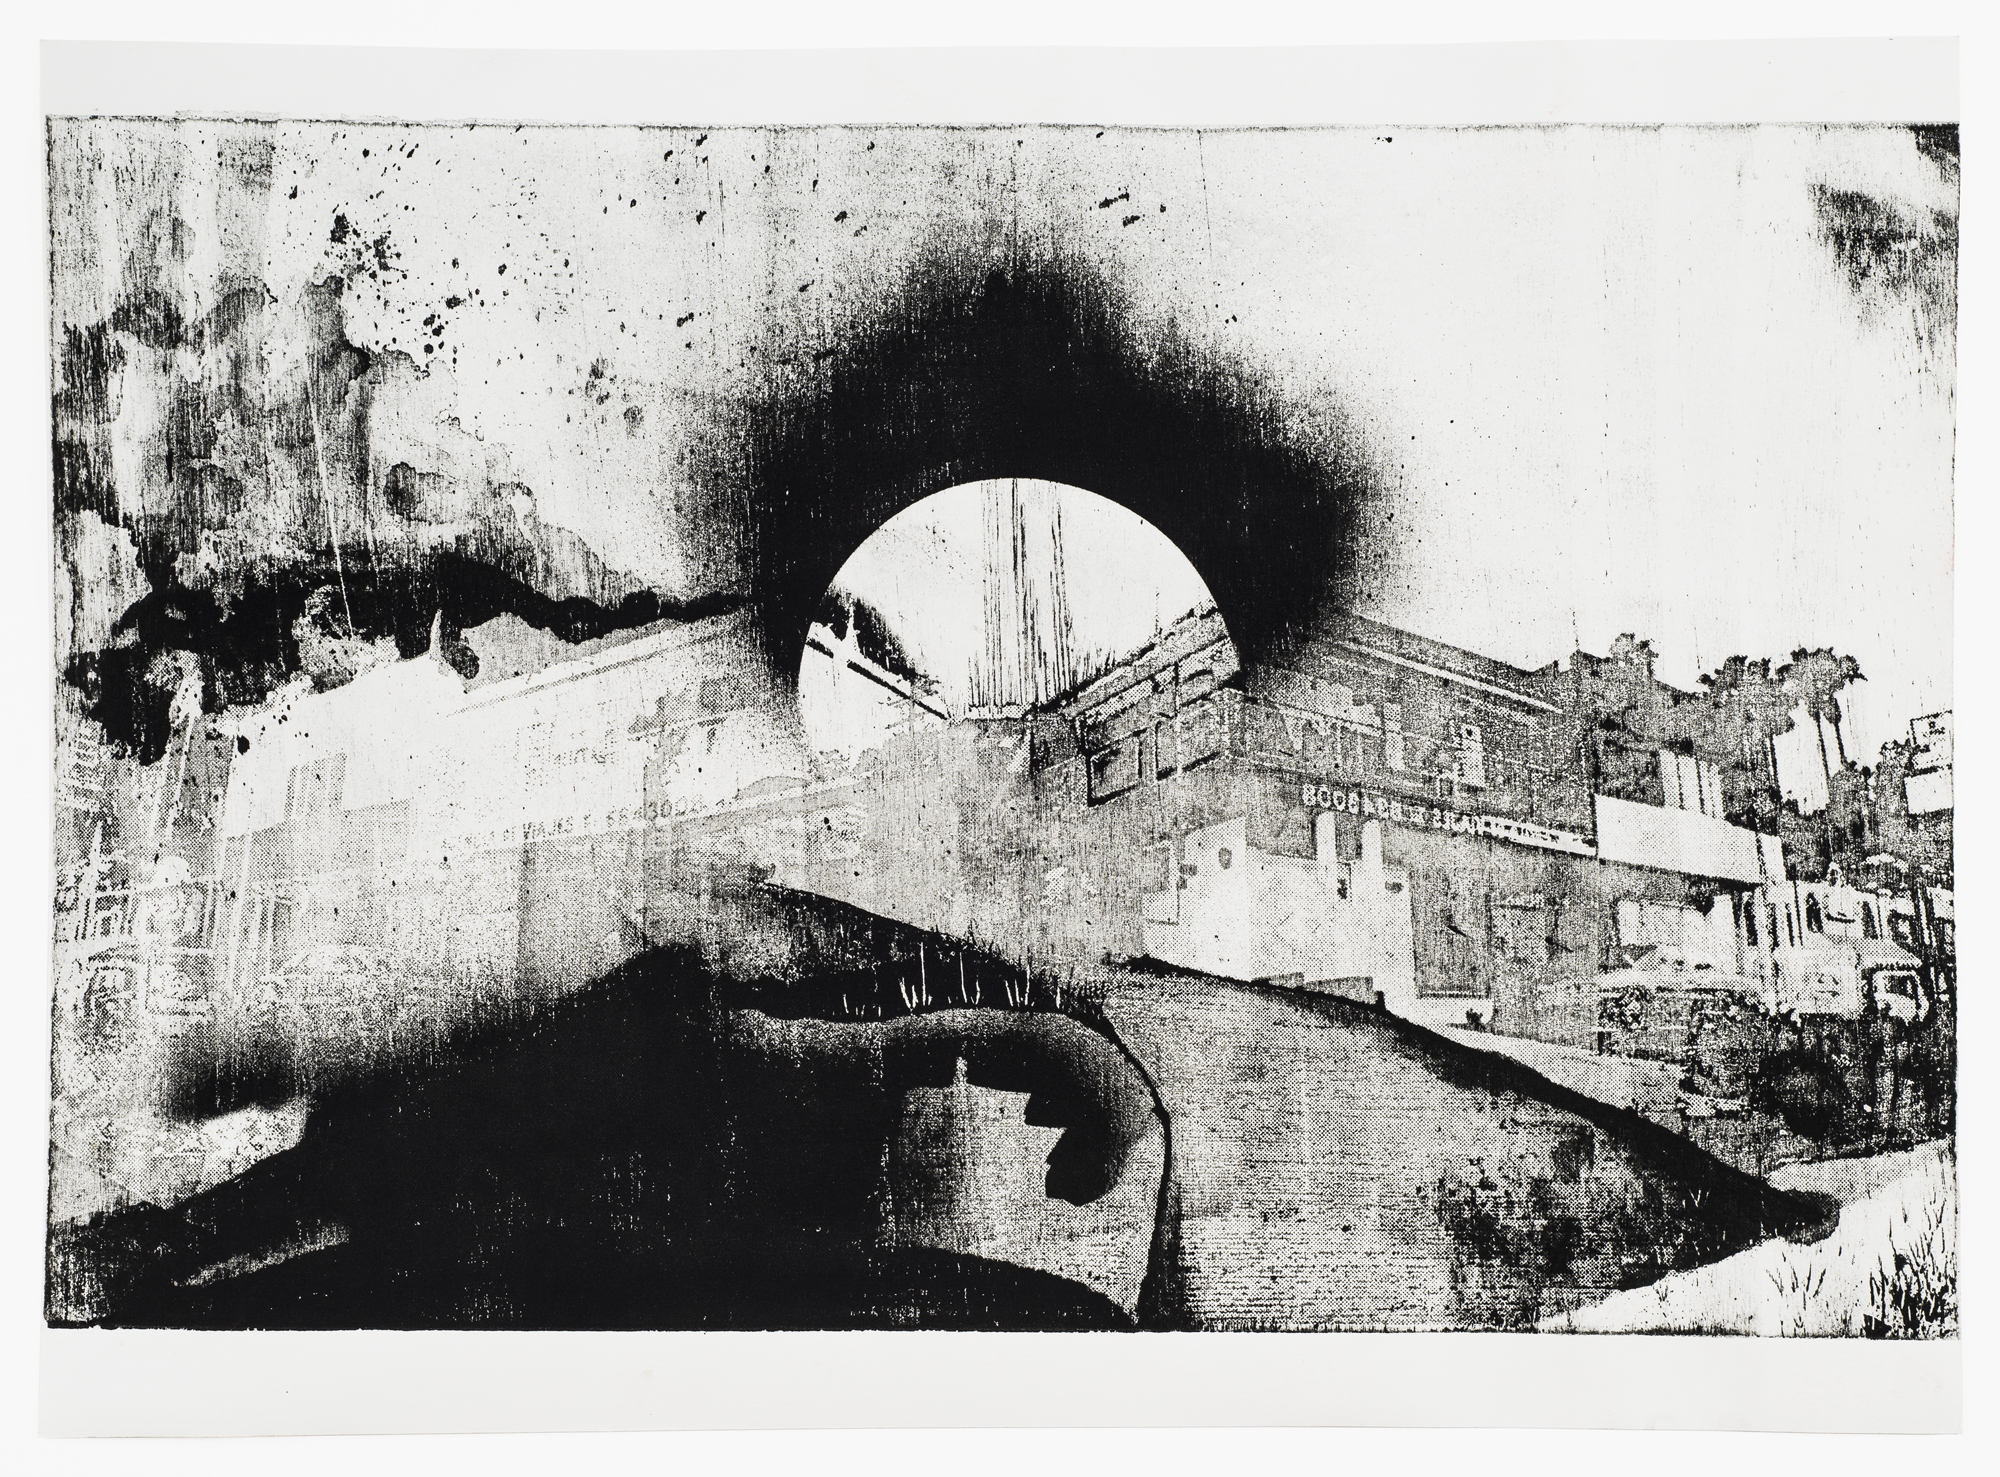 East Tijuana, Driveway,  2016 Wood Lithography, 22 in W x 16 in H  Photo: Jerry Birchfield, Field Studio Photography